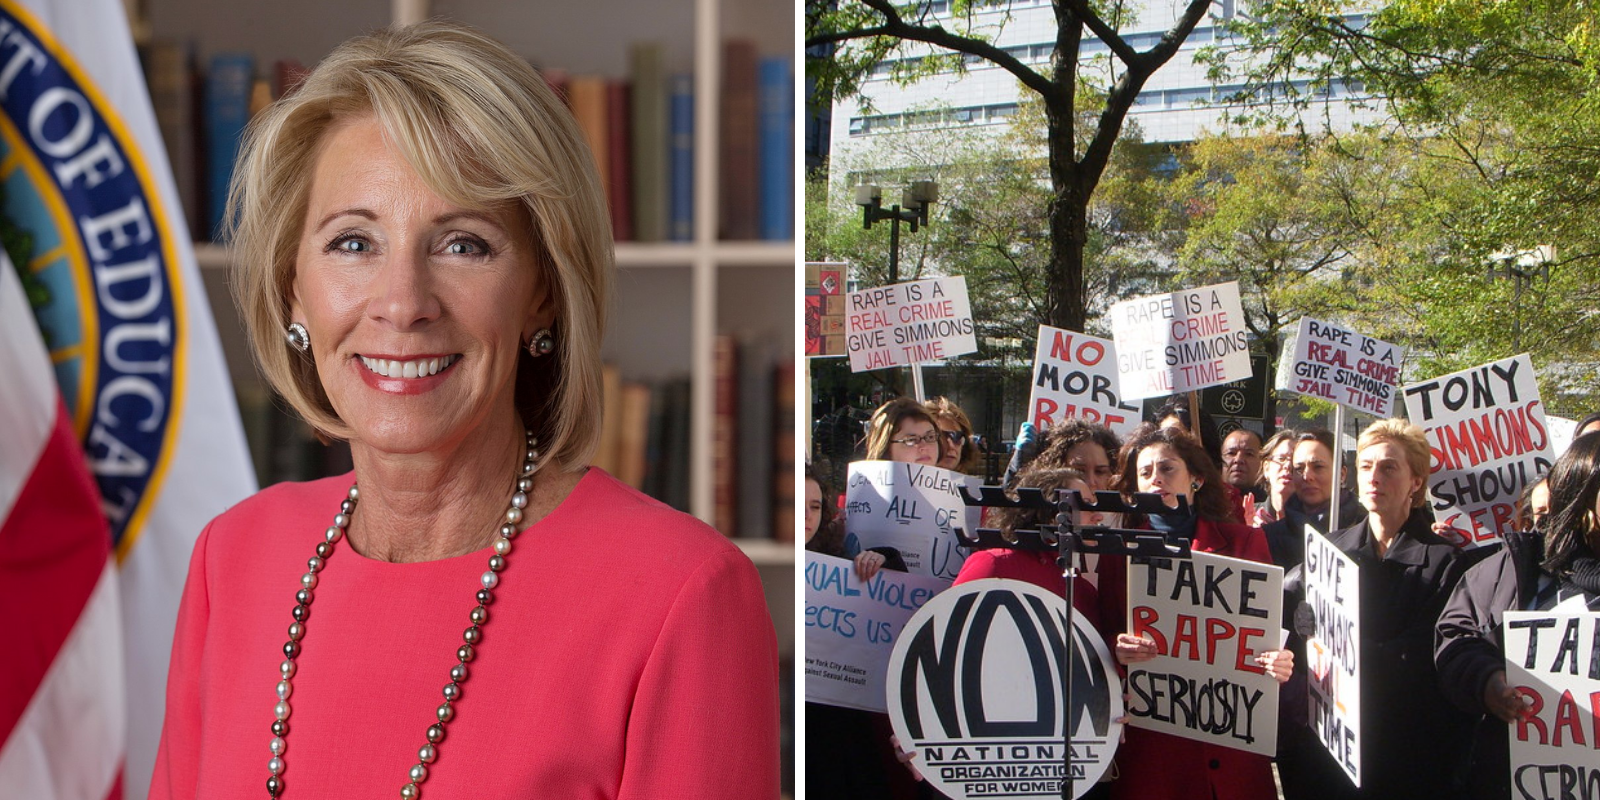 Betsy Devos restores much-needed due process to American campuses with Title IX reforms